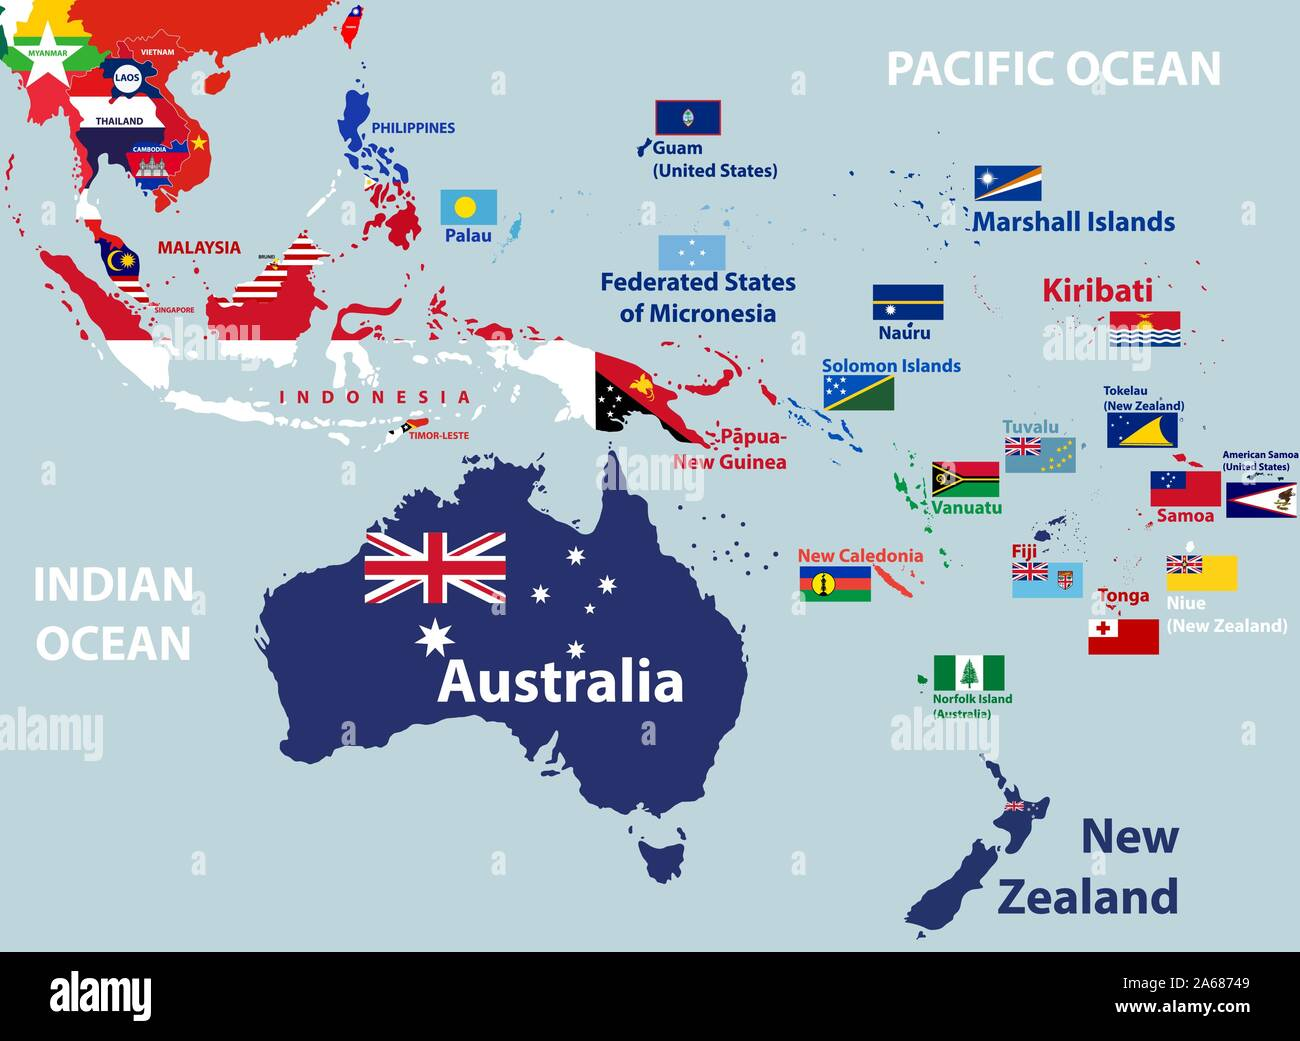 Picture of: Vector Map Of Australia Oceania And South East Asian Countries Mixed With Their National Flags Stock Vector Image Art Alamy